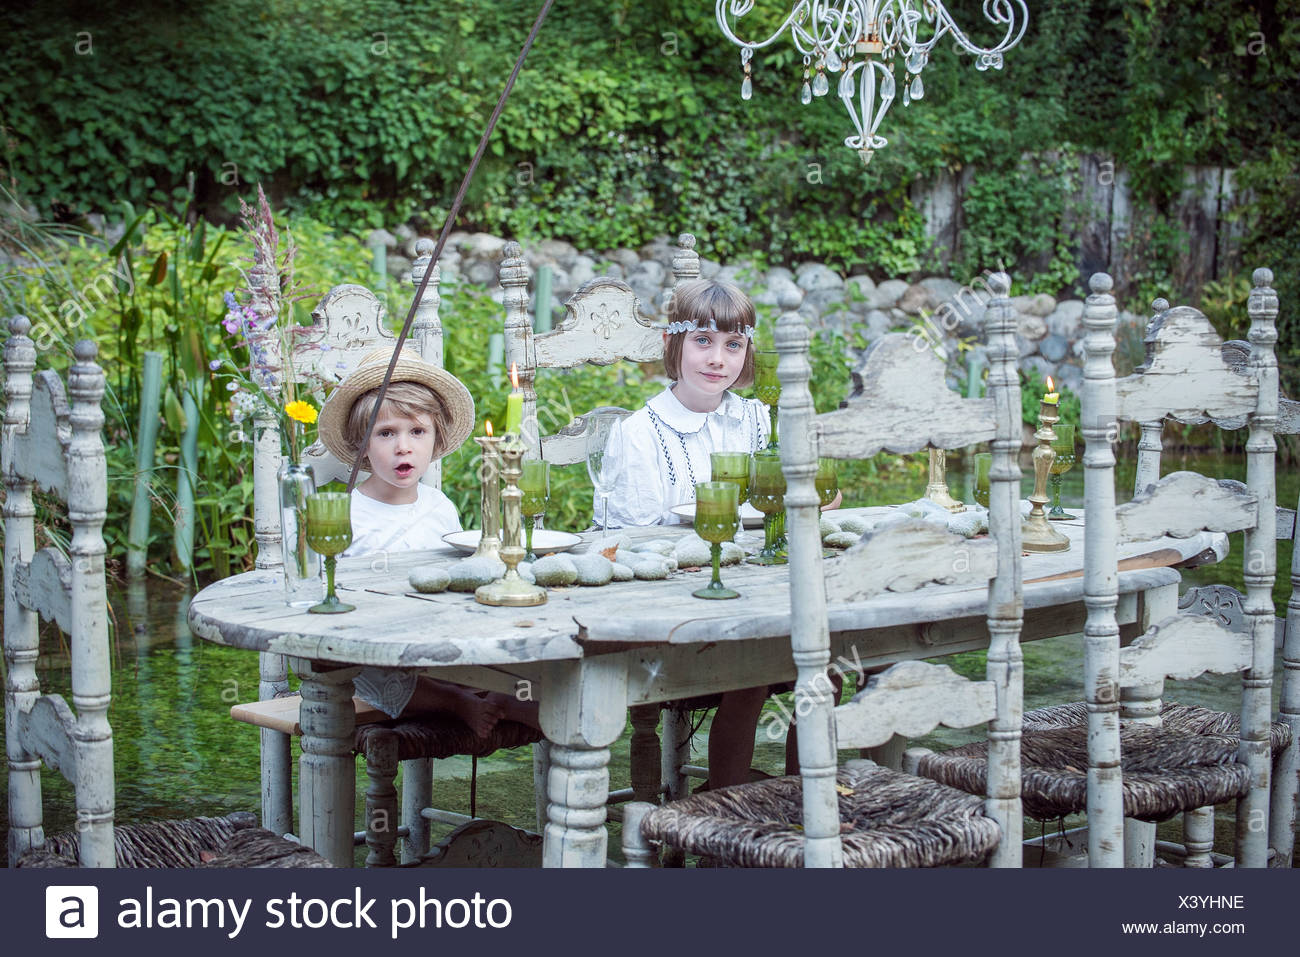 Children playing make-believe outdoors - Stock Image